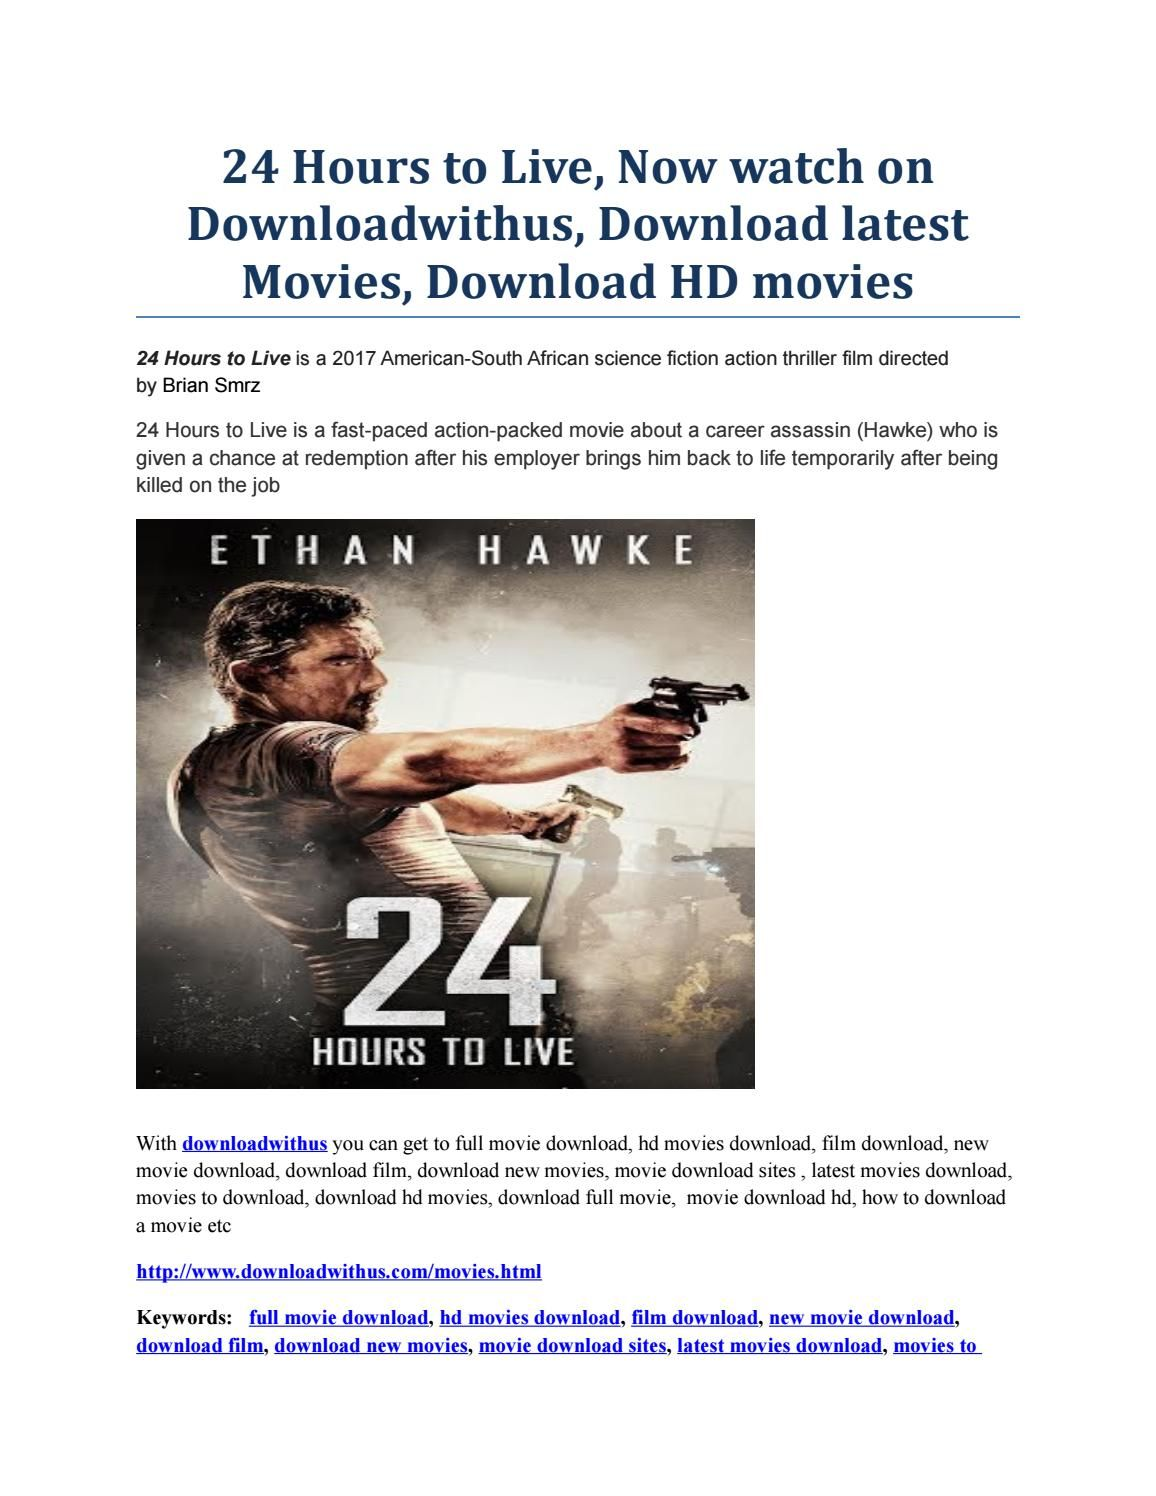 24 hours to live, now watch on downloadwithus, download latest